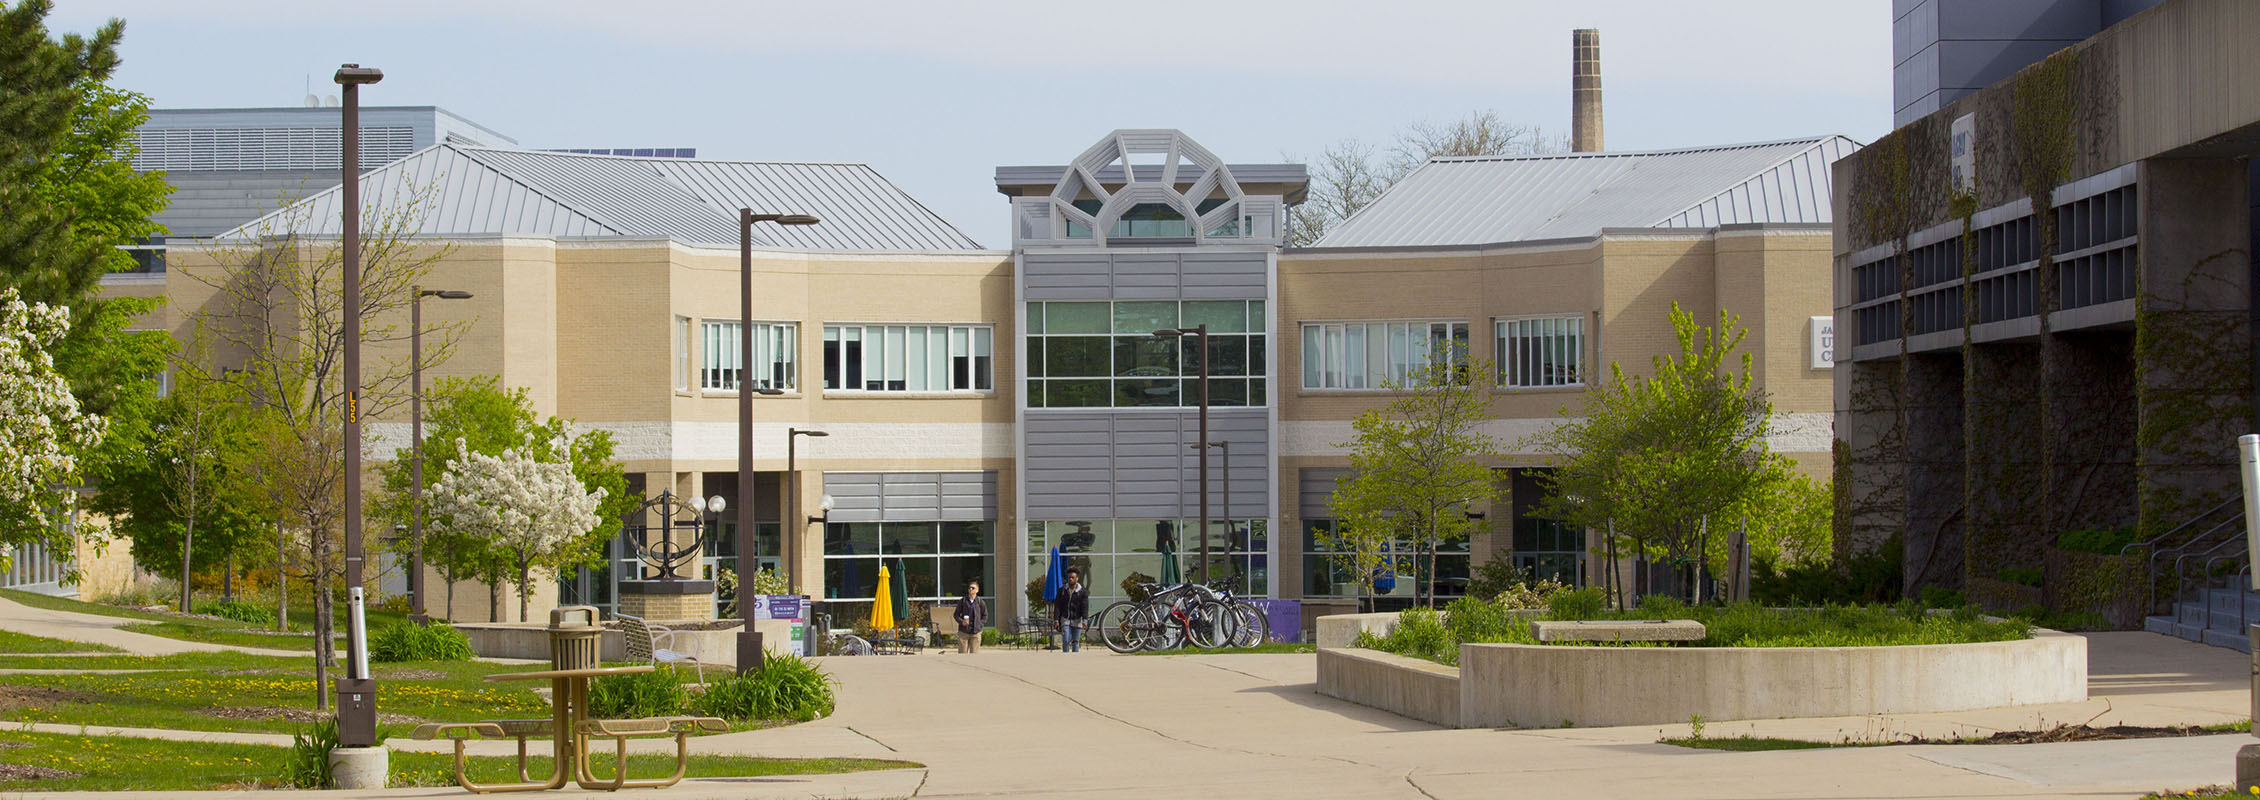 Exterior view of the UW-Whitewater University Center